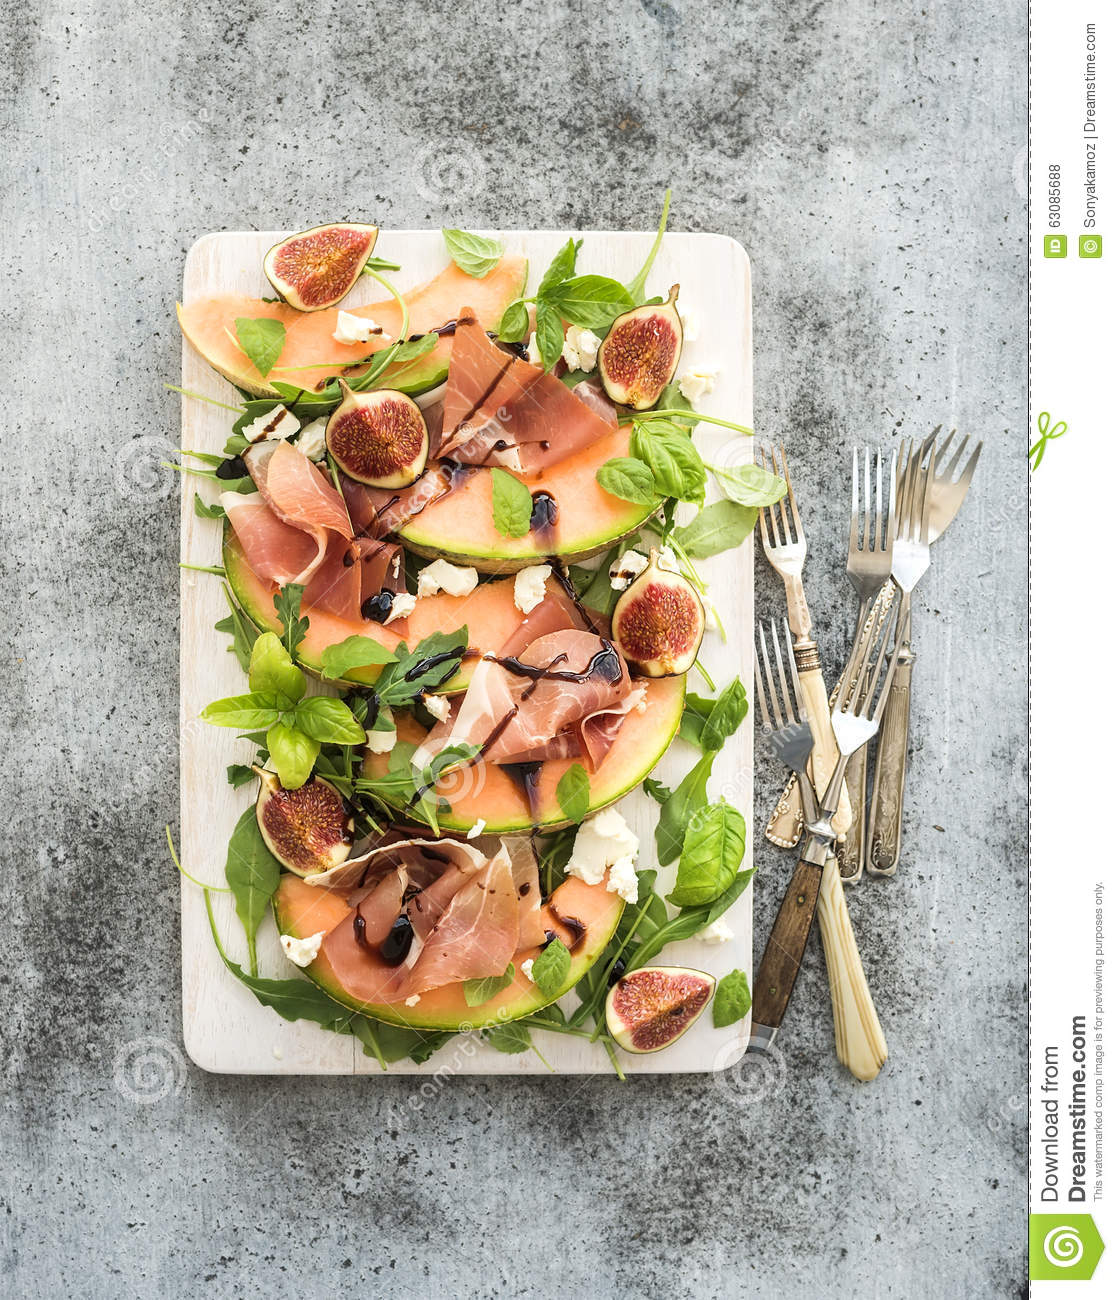 Download Salade De Prosciutto, De Melon, De Figue Et De Fromage à Pâte Molle Sur A Photo stock - Image du jambon, panneau: 63085688